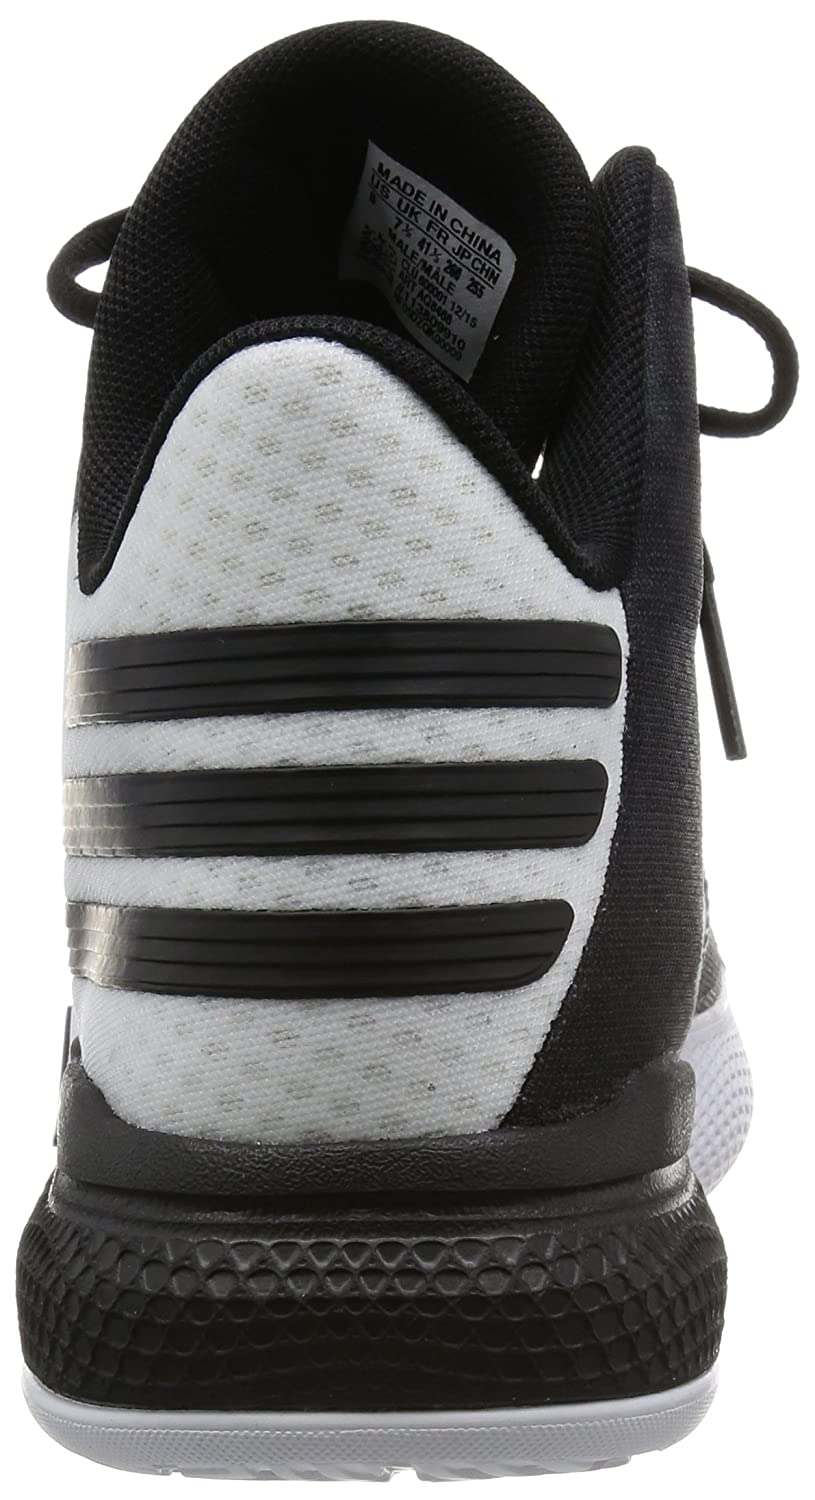 the best attitude d5ff6 b09e4 adidas Herren Light Em Up 2 Basketballschuhe  Amazon.de  Schuhe    Handtaschen